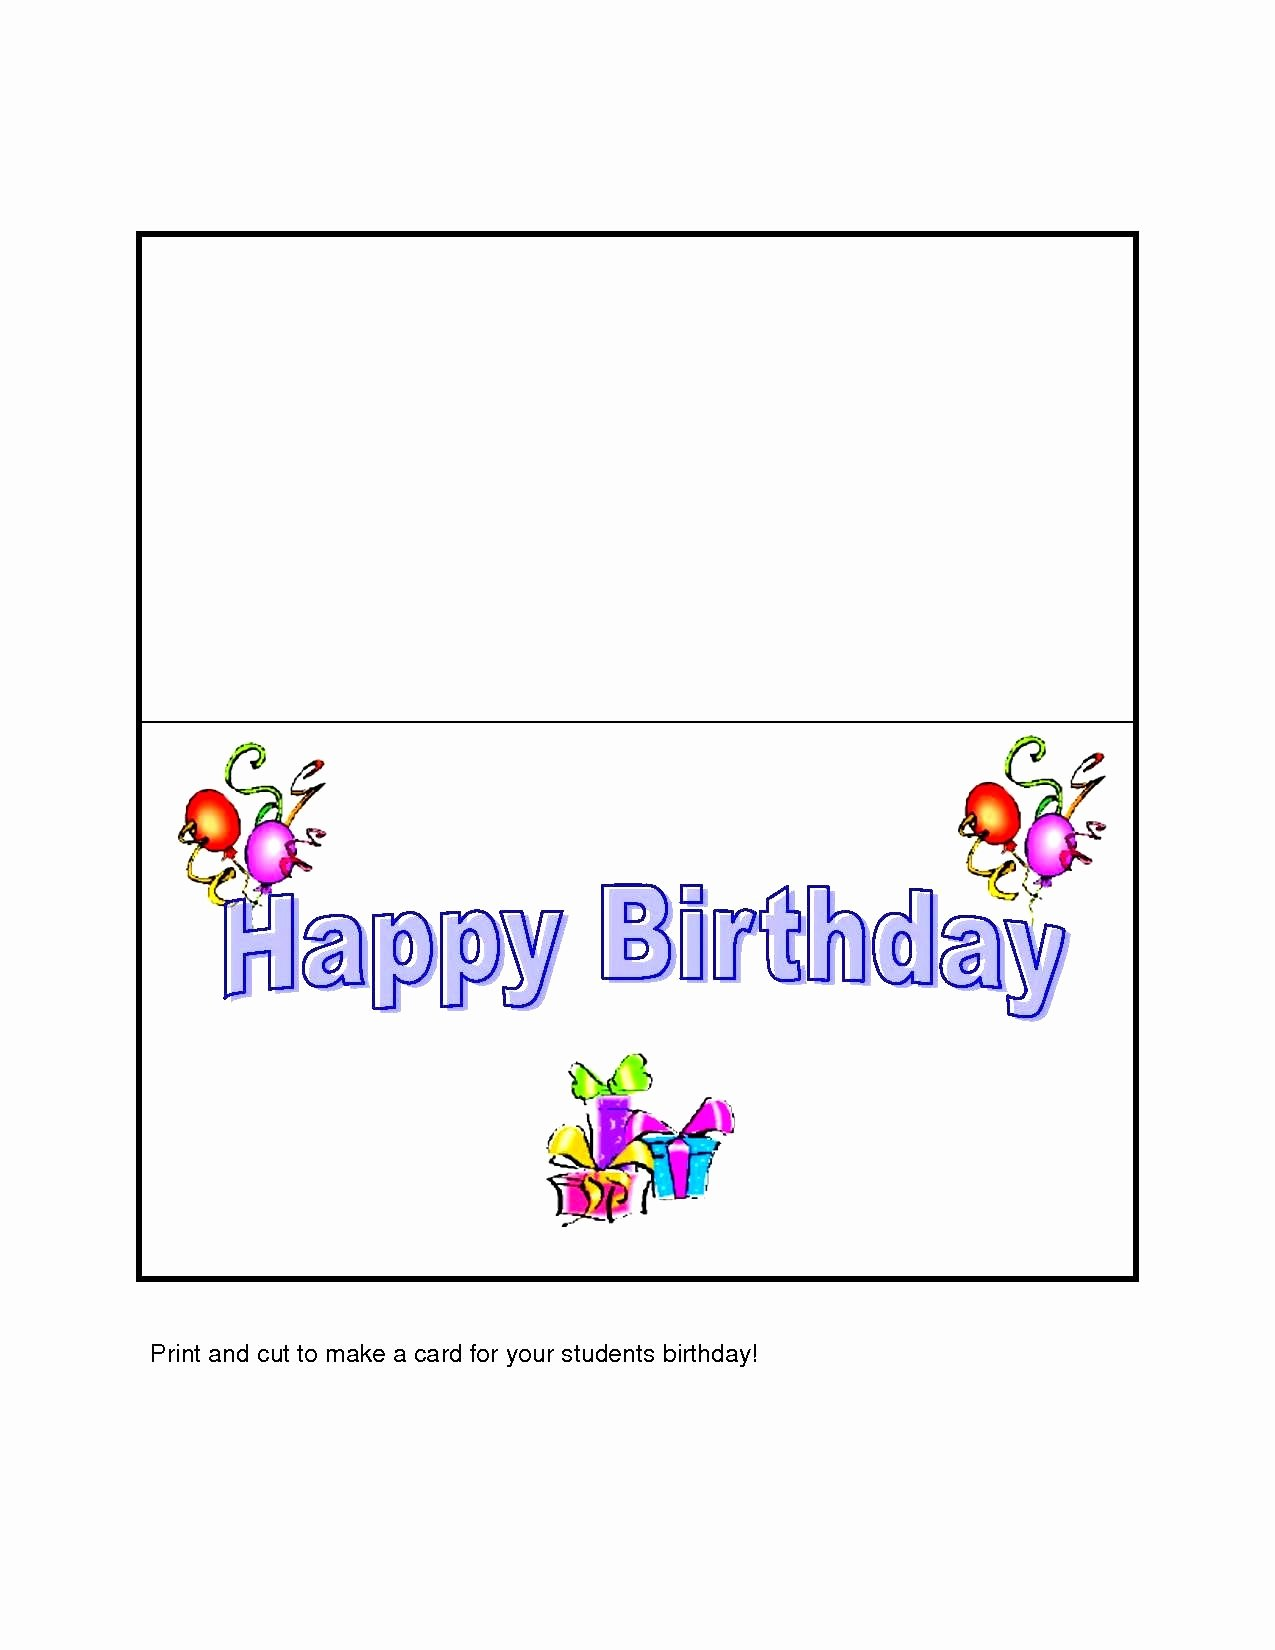 Gift Box Templates Free Printable Card Invitation Samples